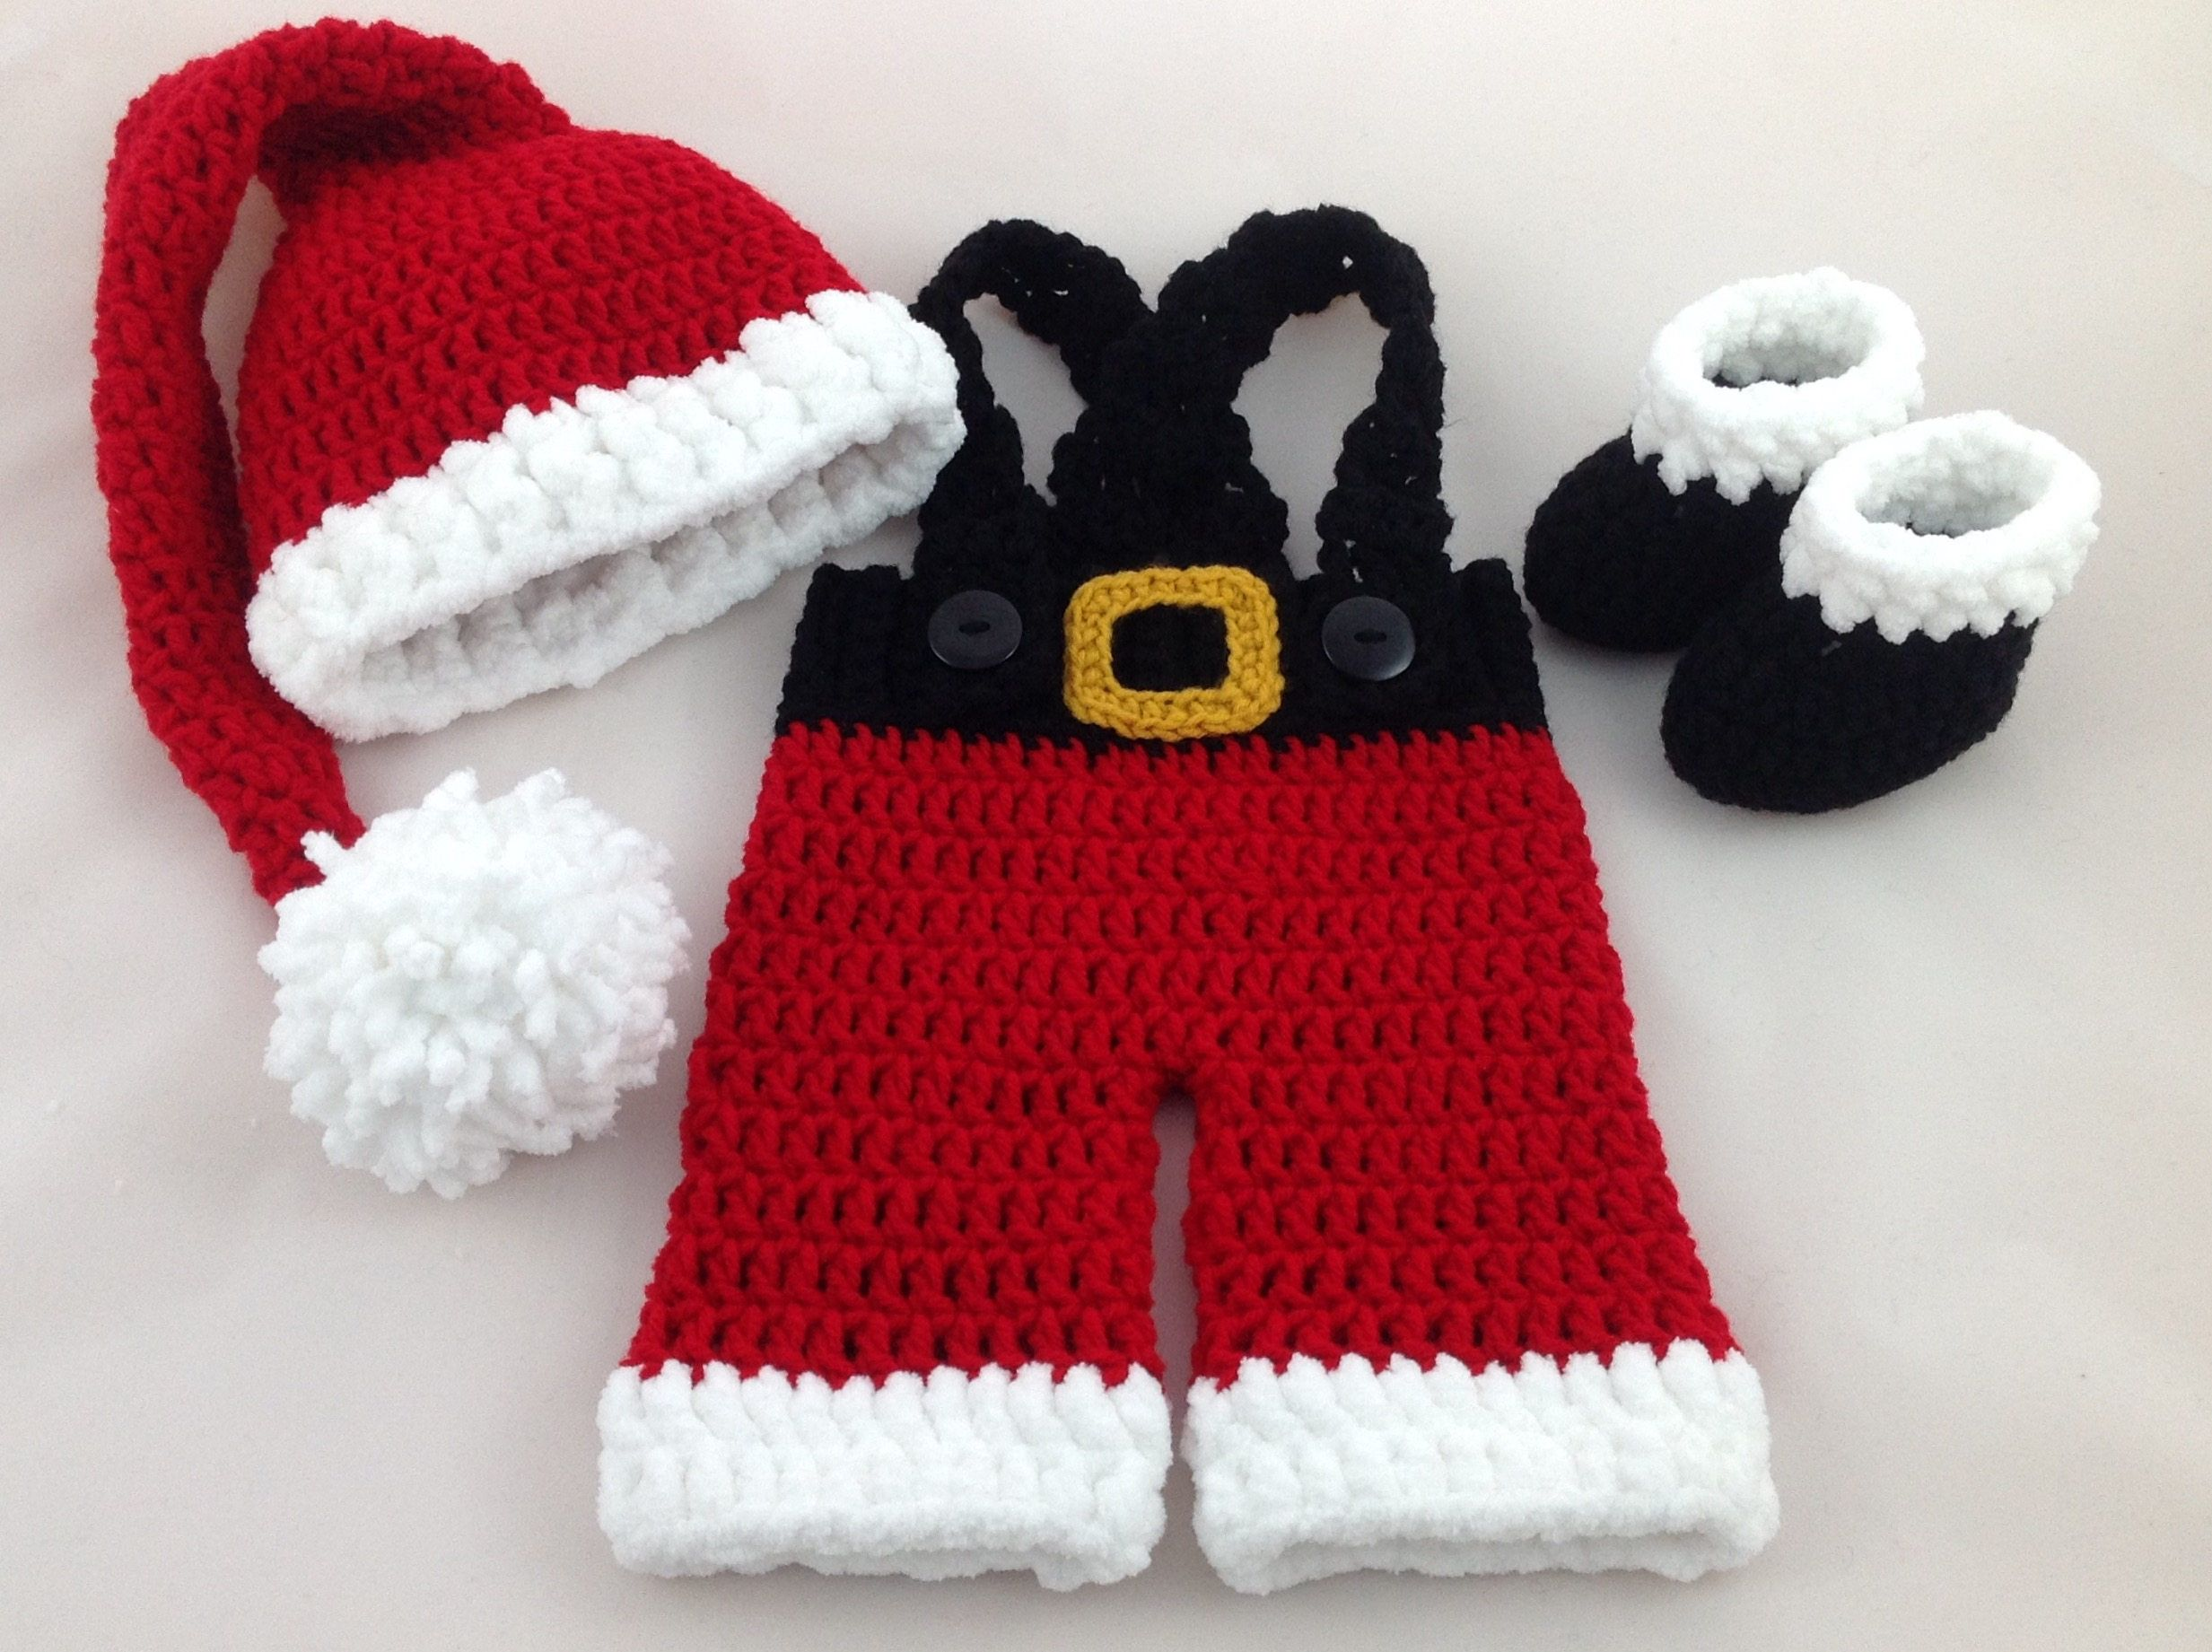 945be94564c Baby Santa Outfit - Crochet Santa Suit - Newborn Santa Outfit - Baby First  Christmas - Kids Christmas Outfit - Baby Girl - Baby Boy by  TimelessCrochetCraft ...